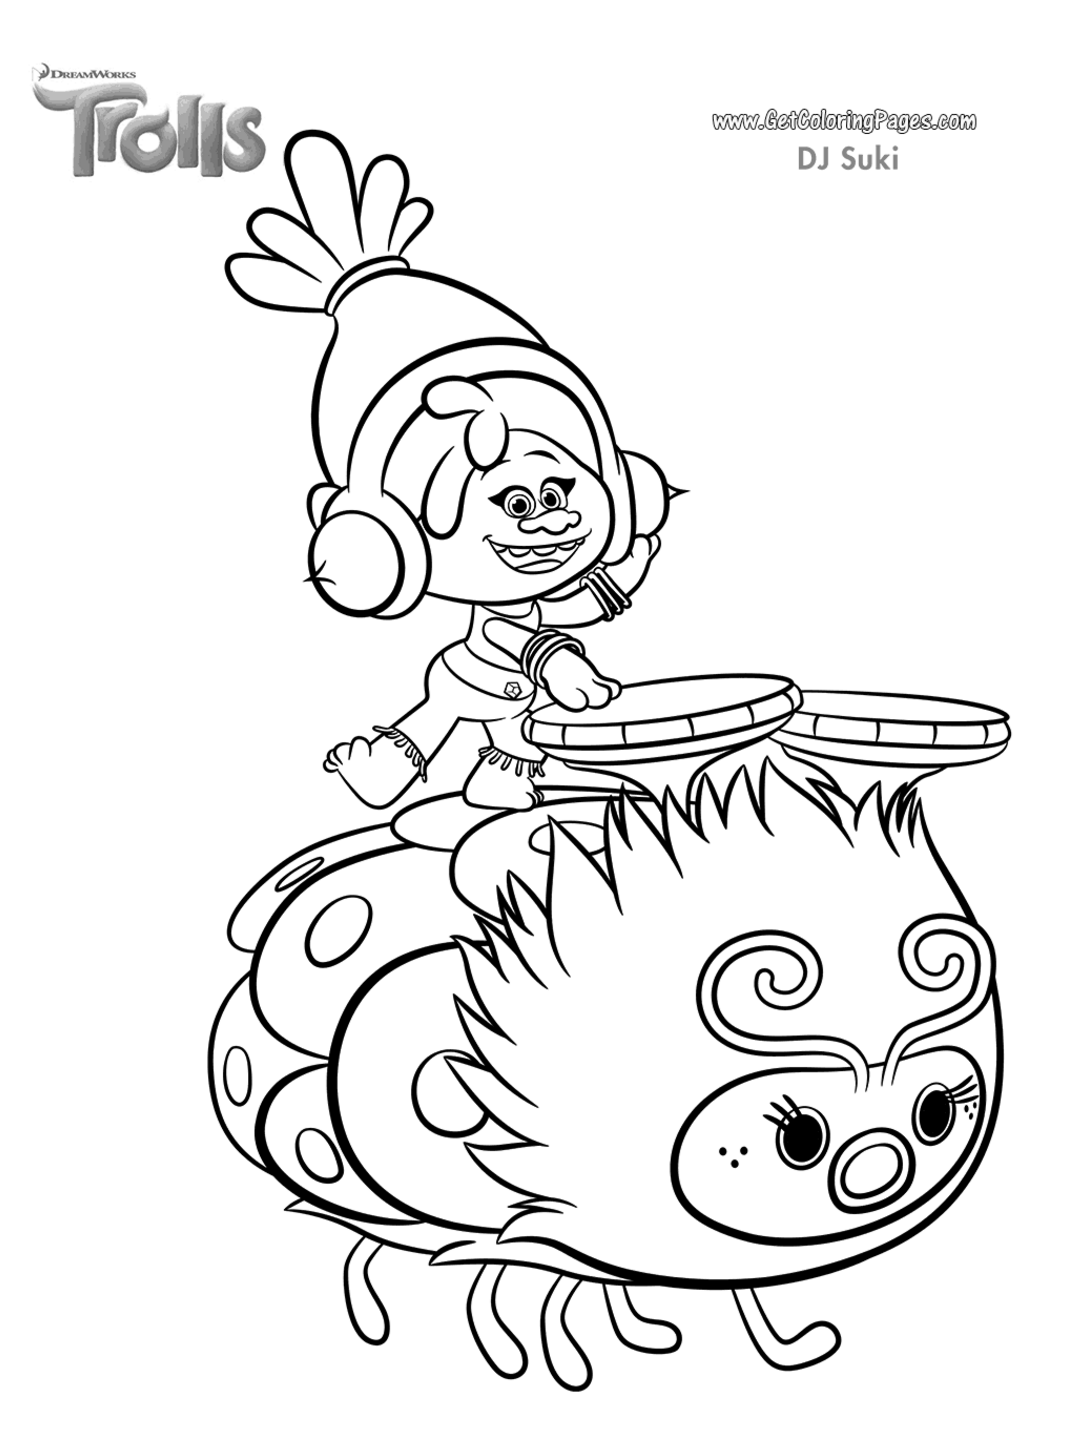 Beautiful Trolls coloring page to print and color